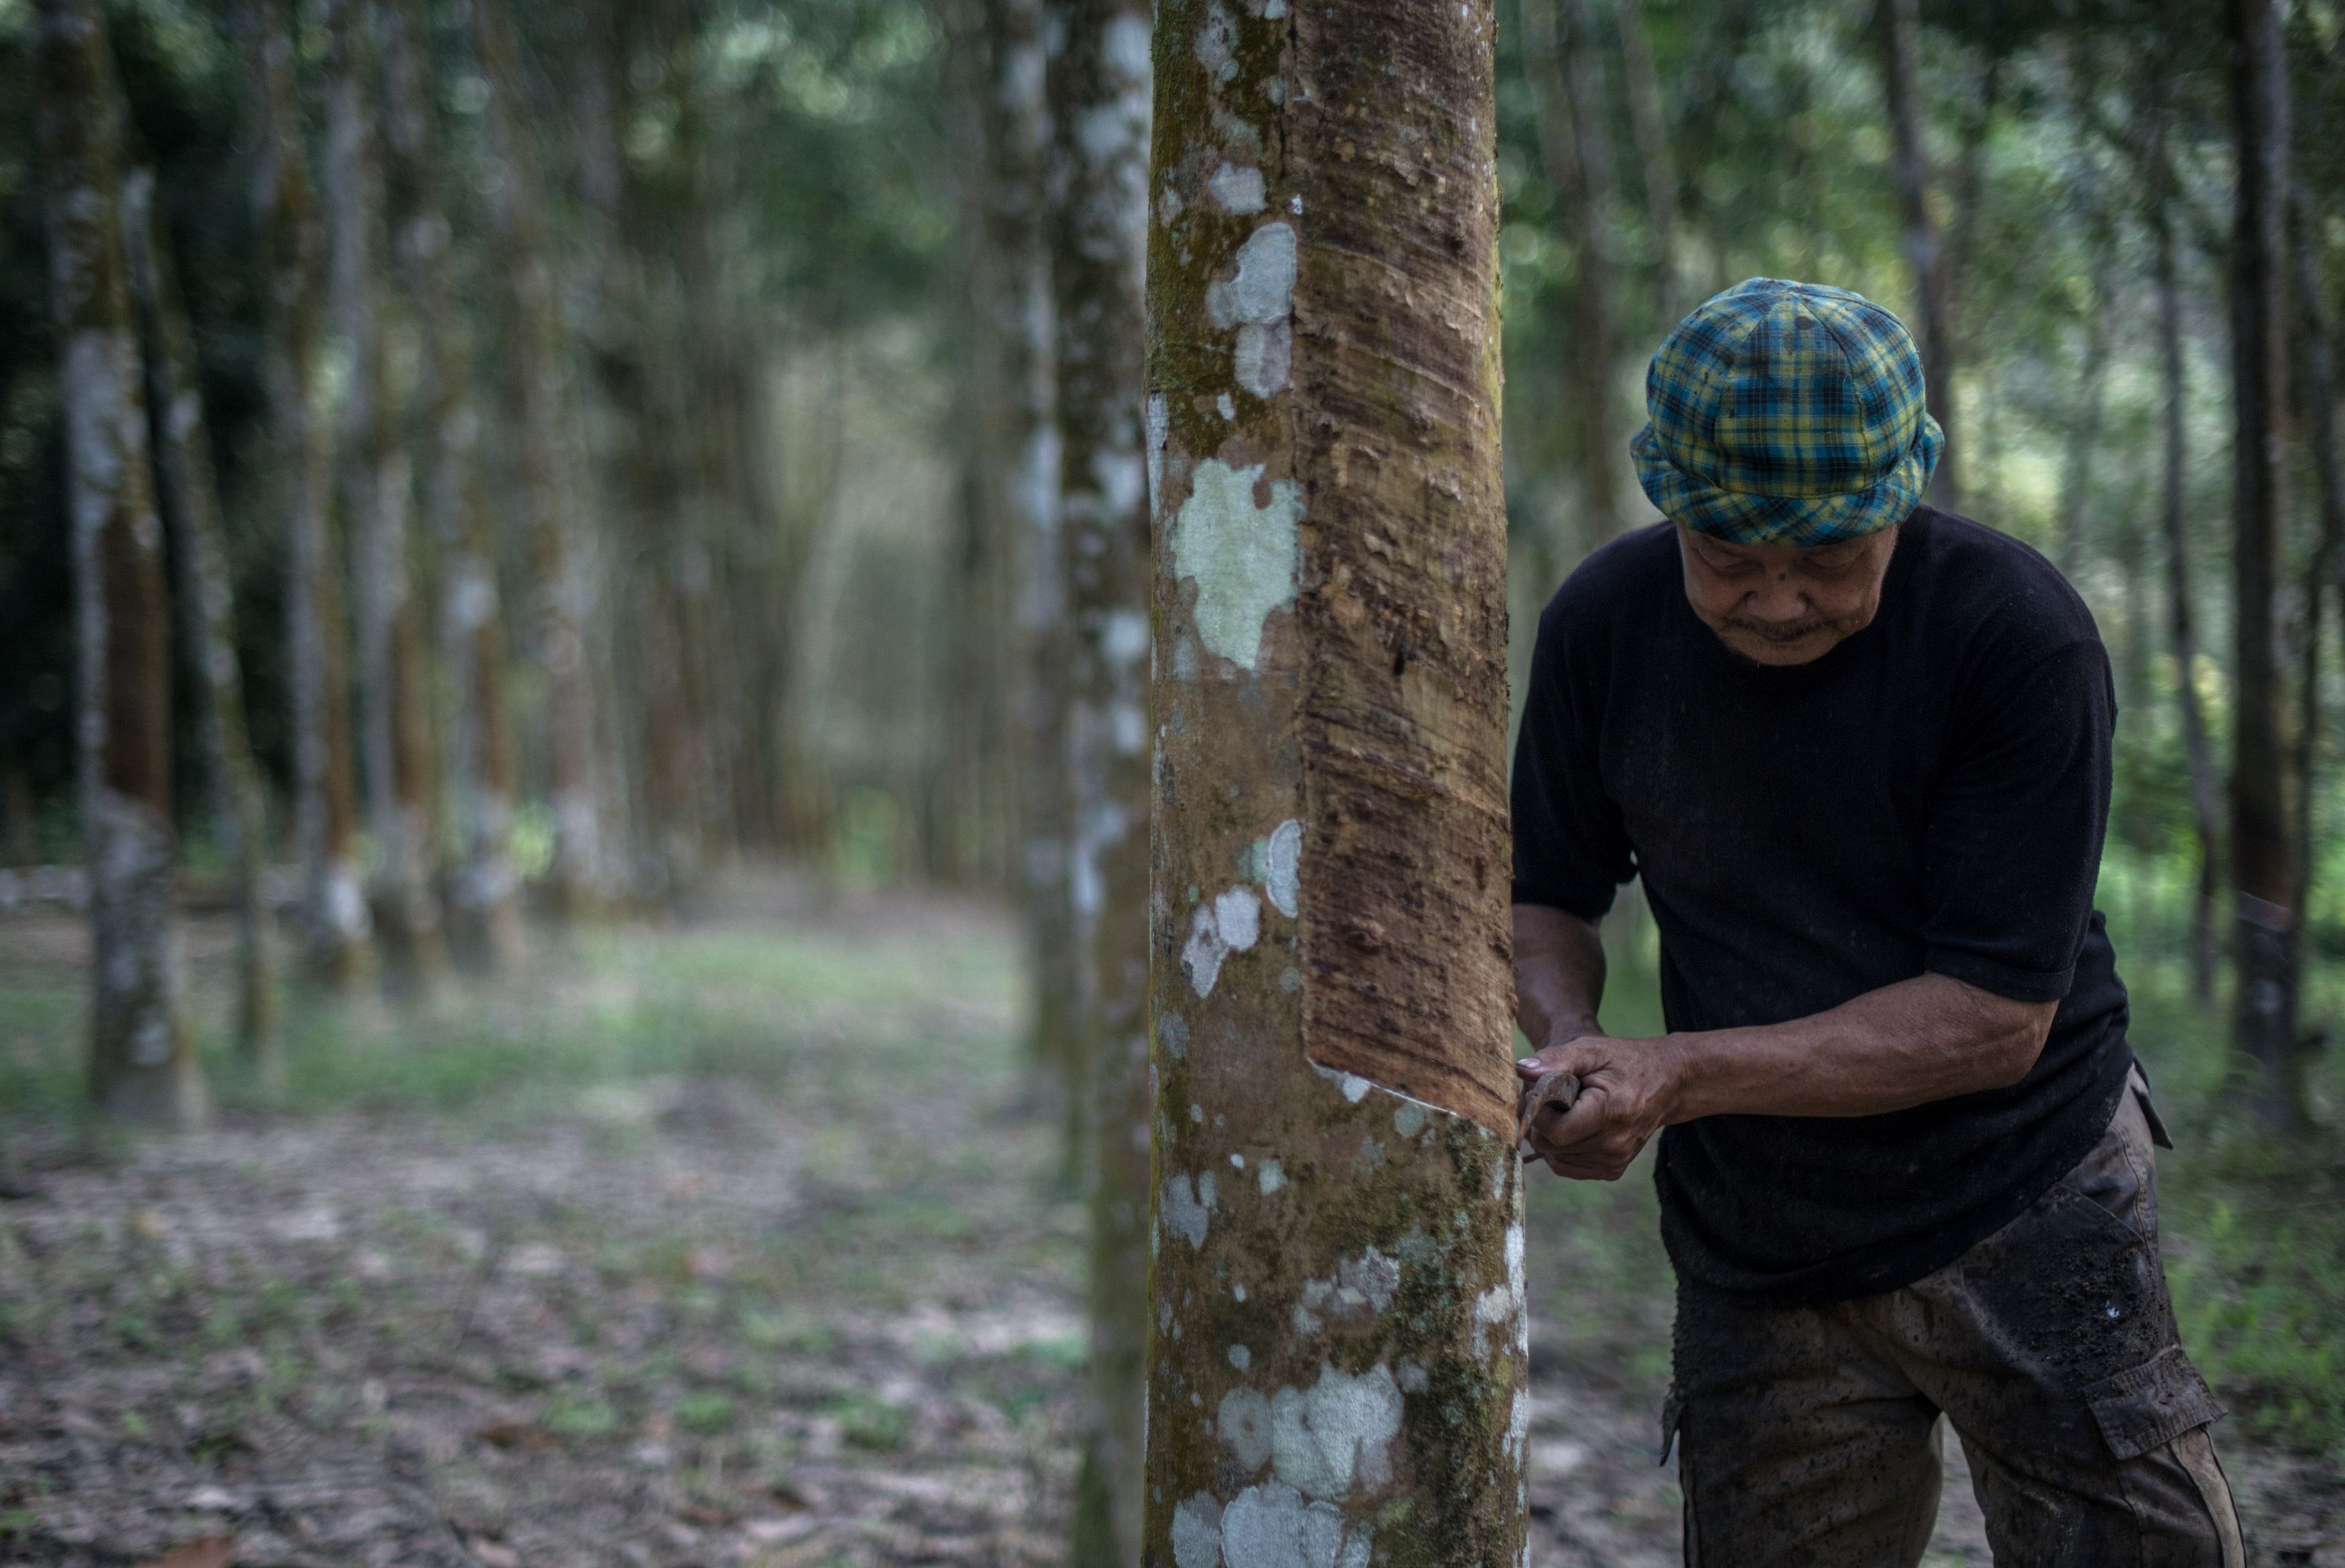 A worker collects raw latex from a rubber tree at a plantation in Pahang, outside Kuala Lumpur, Malaysia, on Jan. 12, 2016. (Mohd Rasfan/AFP/Getty Images)